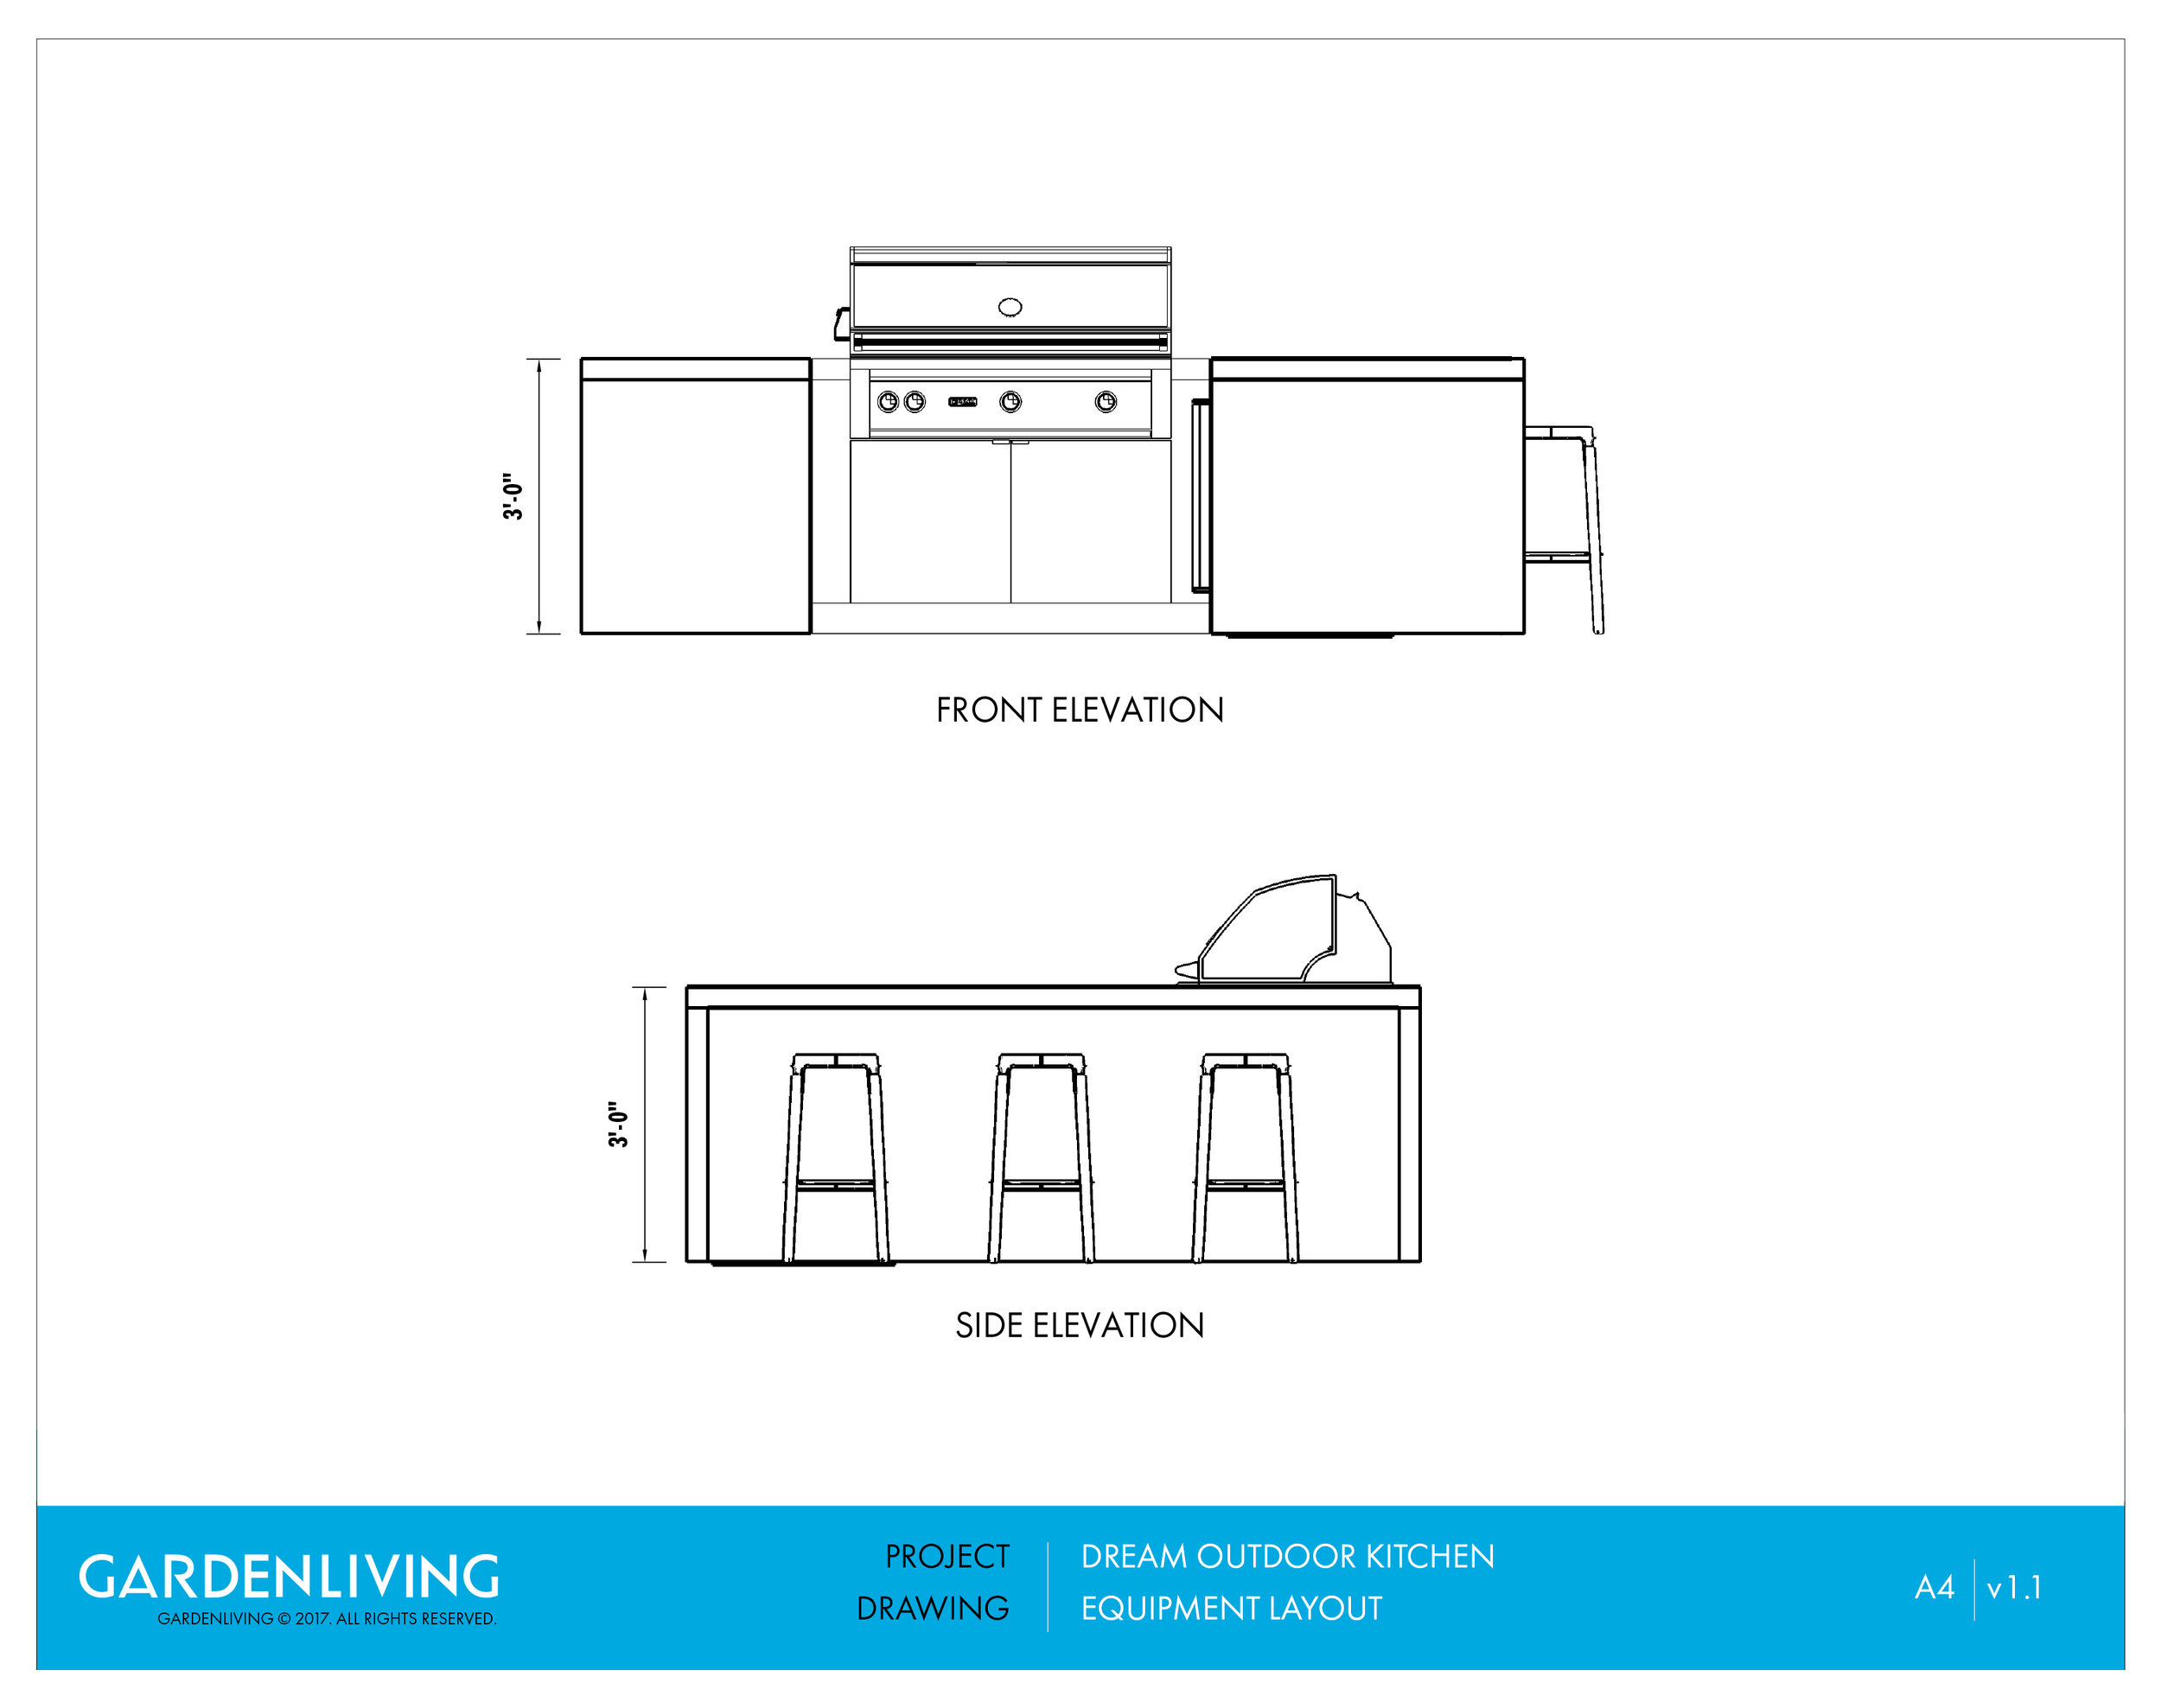 Garden Living - Outdoor Kitchen Architectural Drawings -Elevation Drawings.jpg